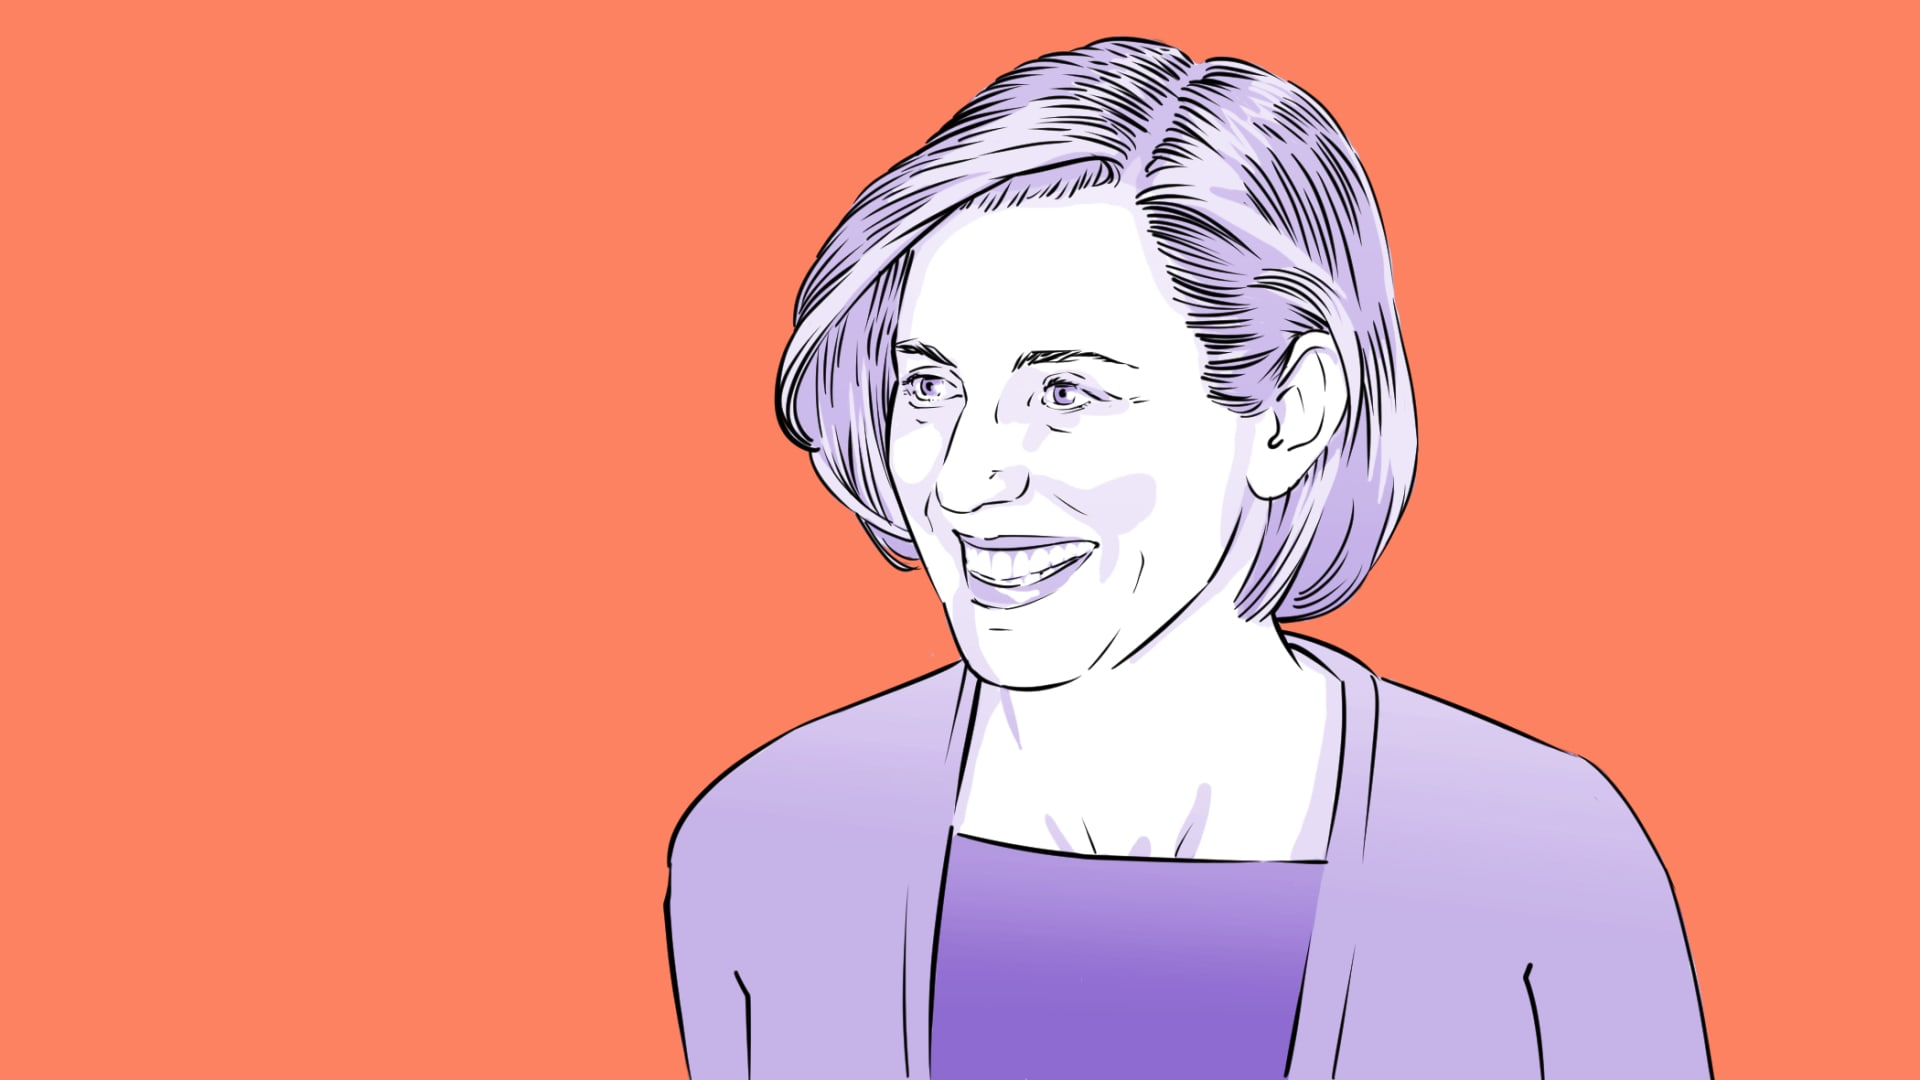 Ellevest Co-Founder Sallie Krawcheck on the Value of Being Uncomfortable